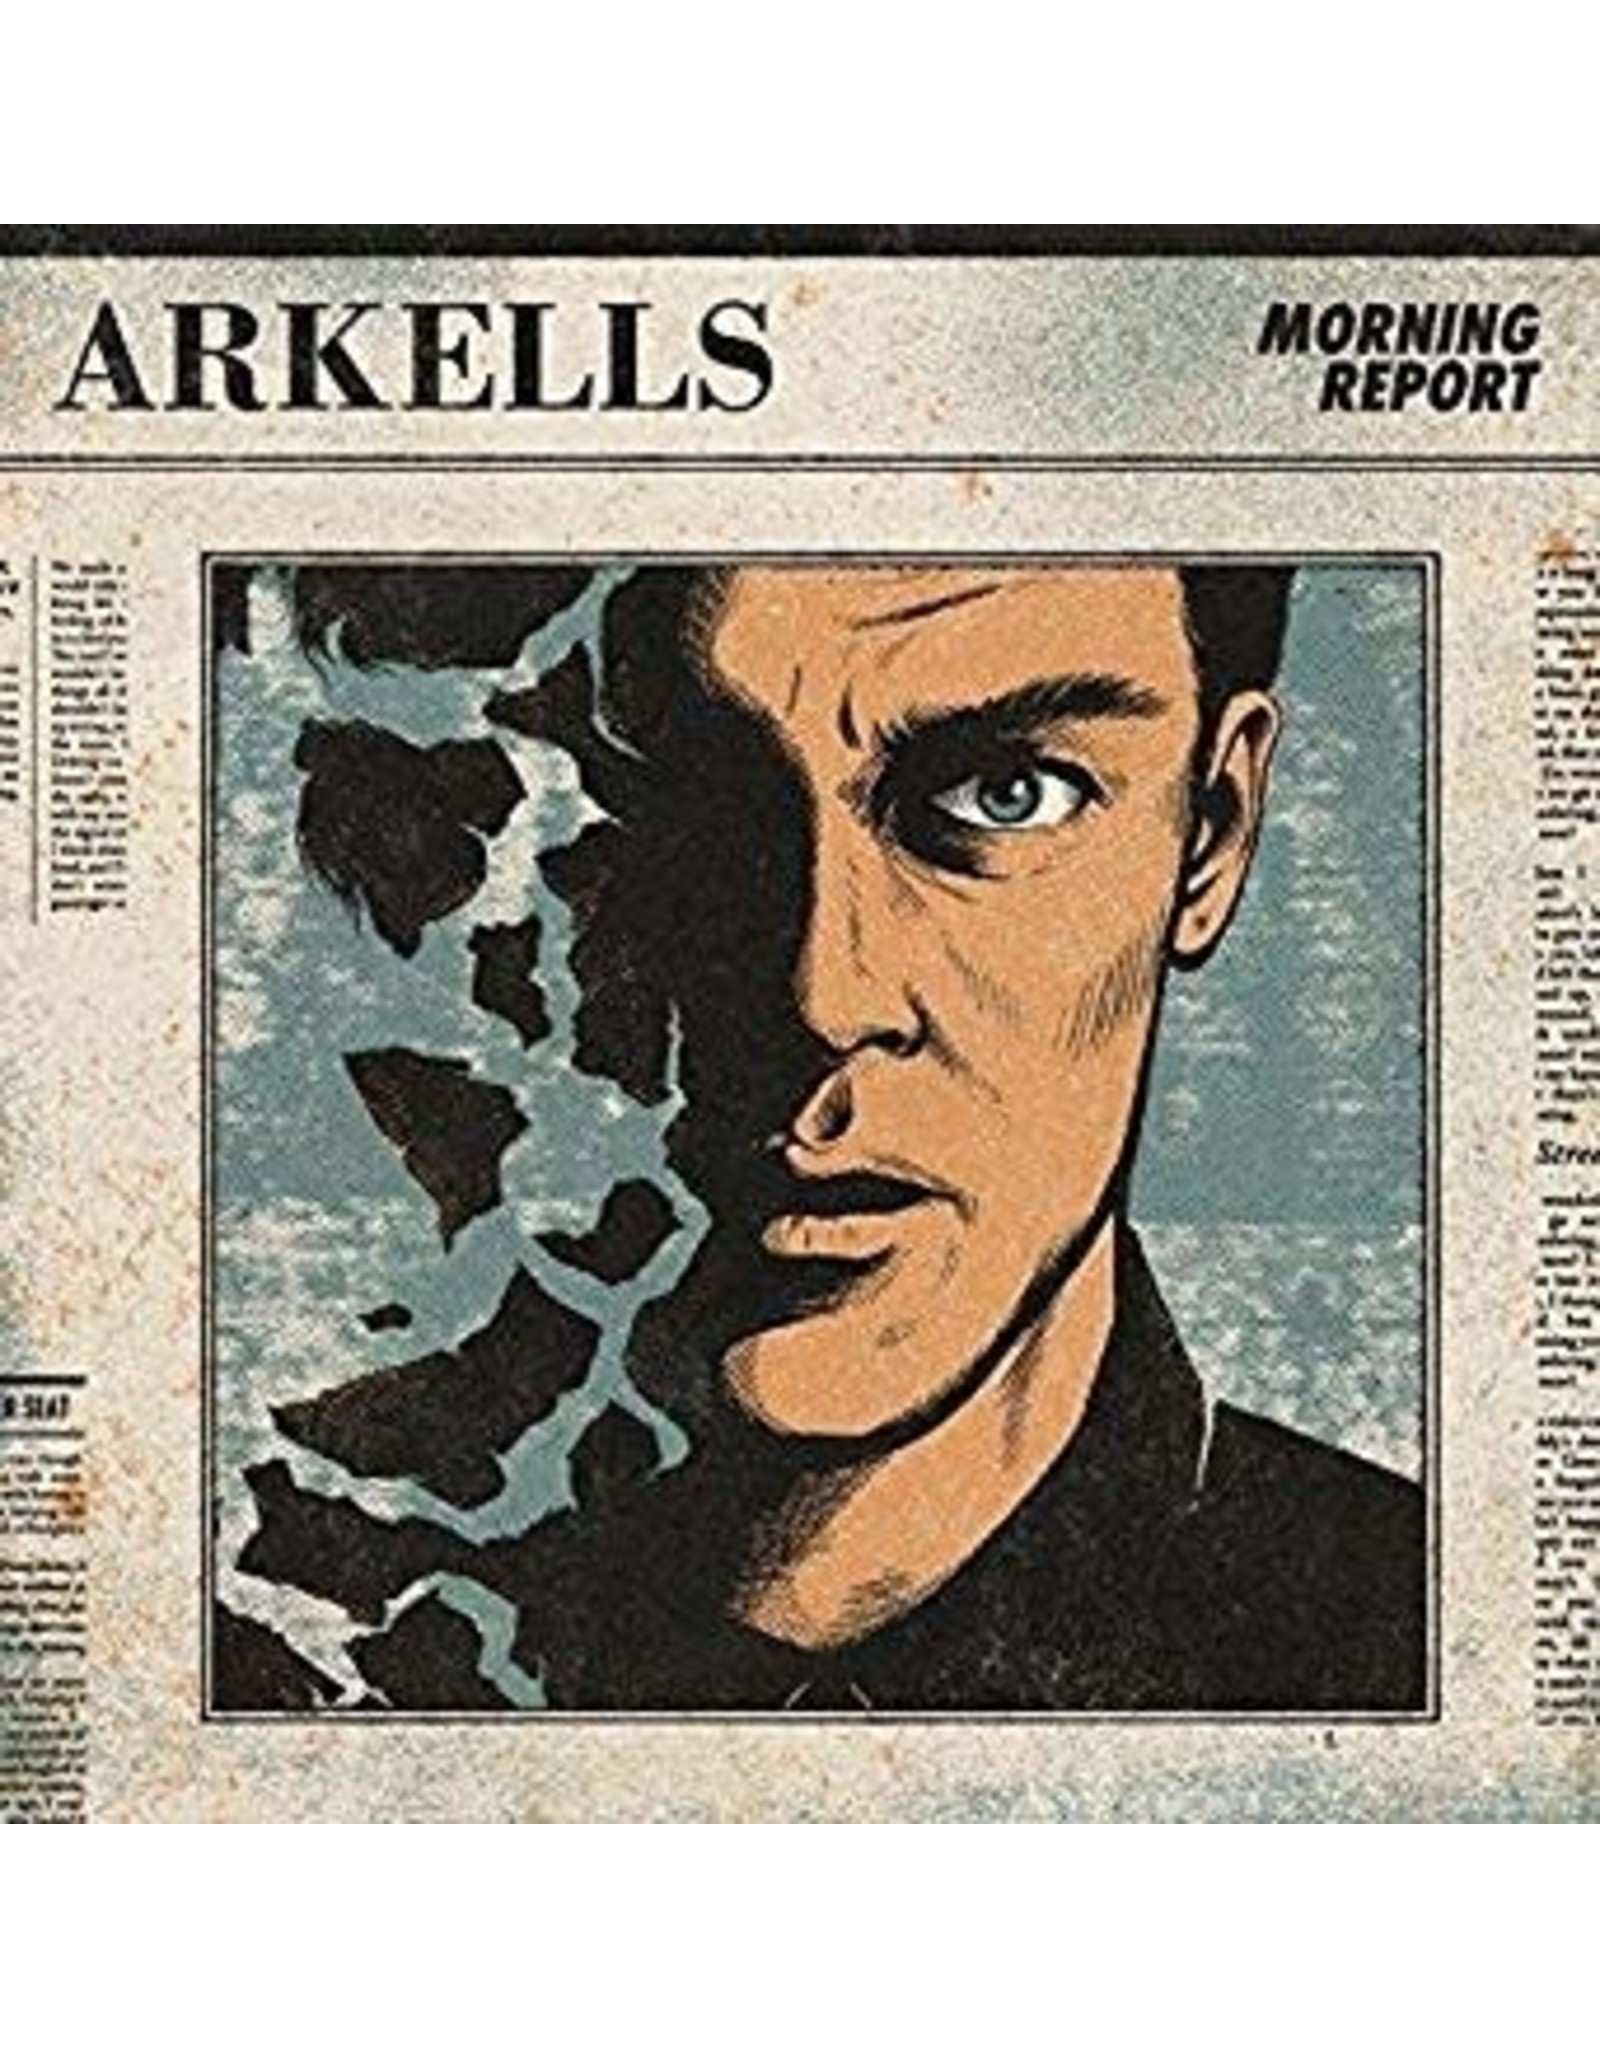 Arkells - Morning Report (Deluxe Edition)